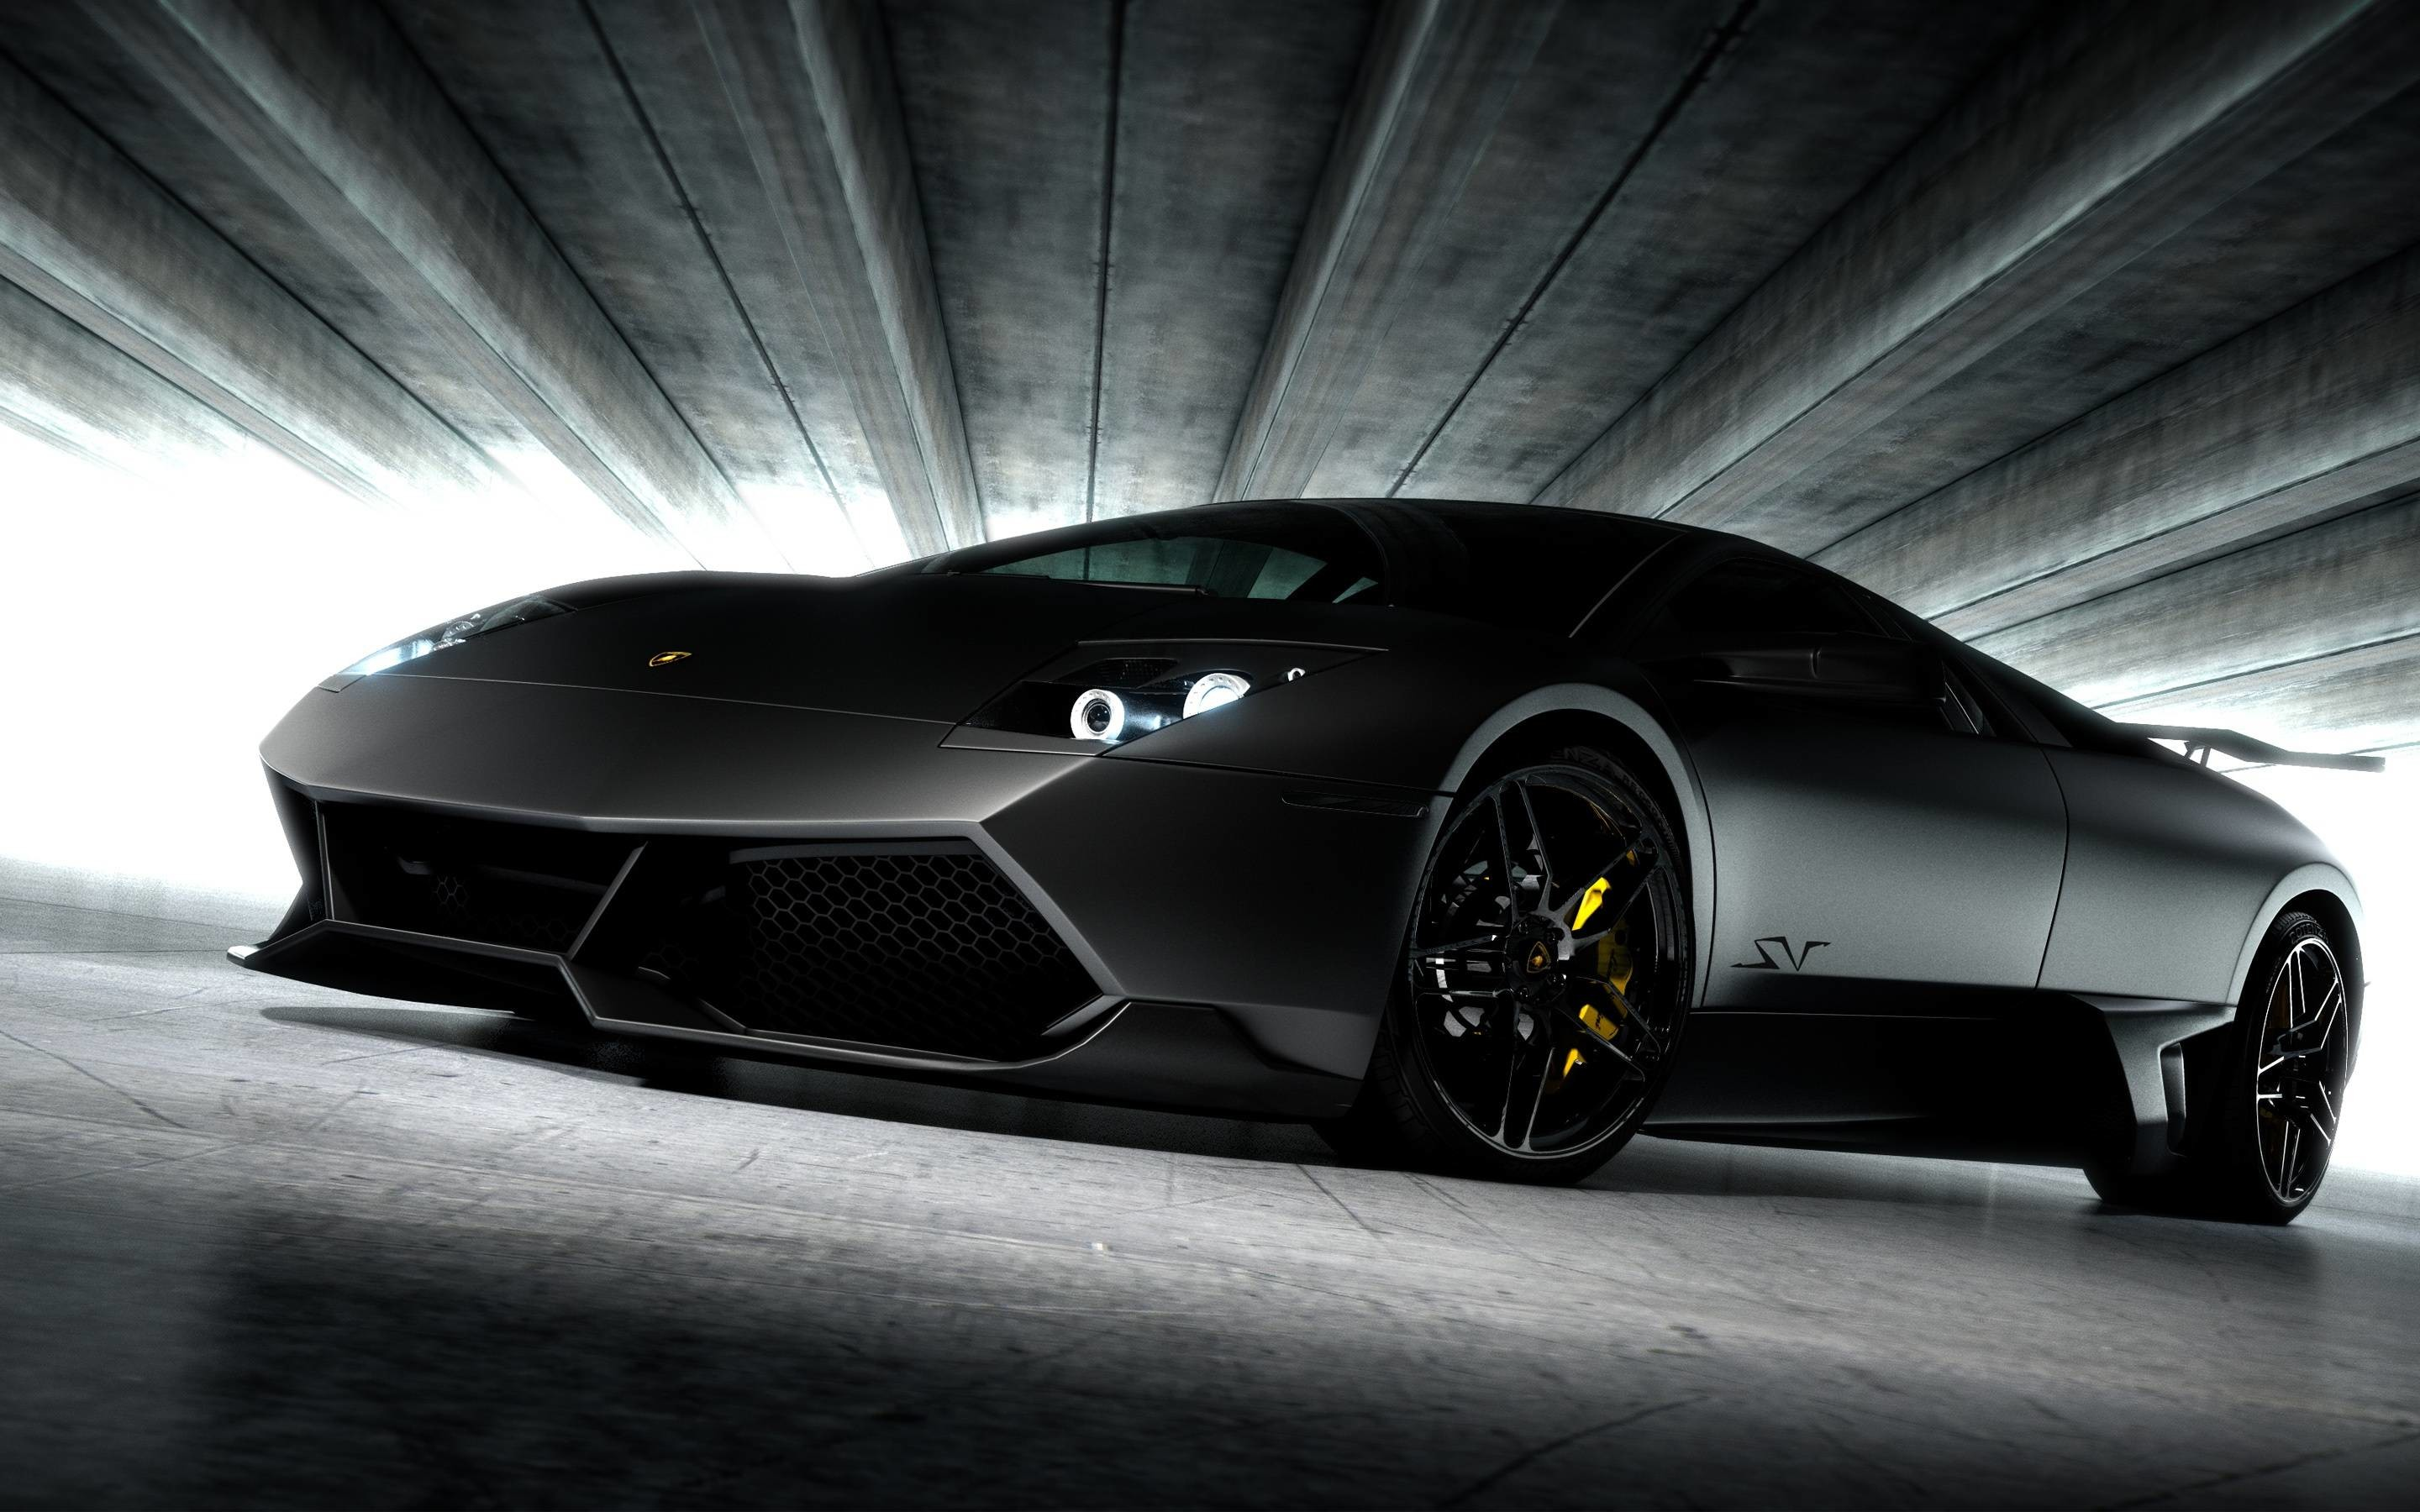 2880x1800 Lamborghini Wallpapers - Page 1 - HD Wallpapers